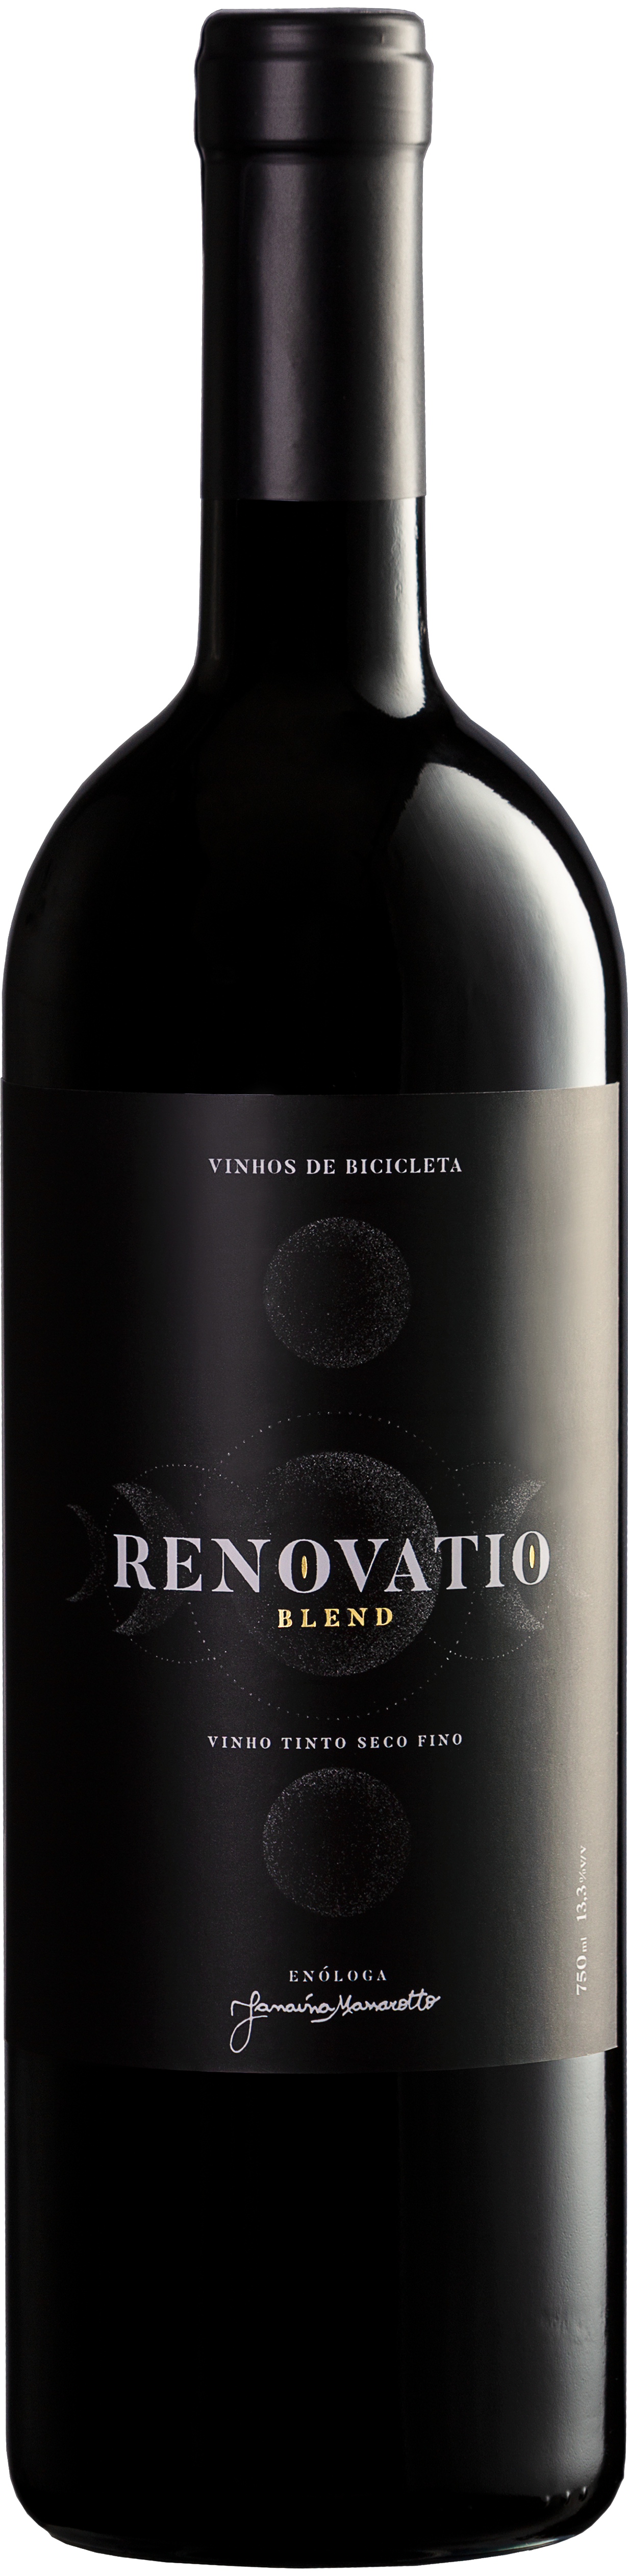 Renovatio Premium Blend